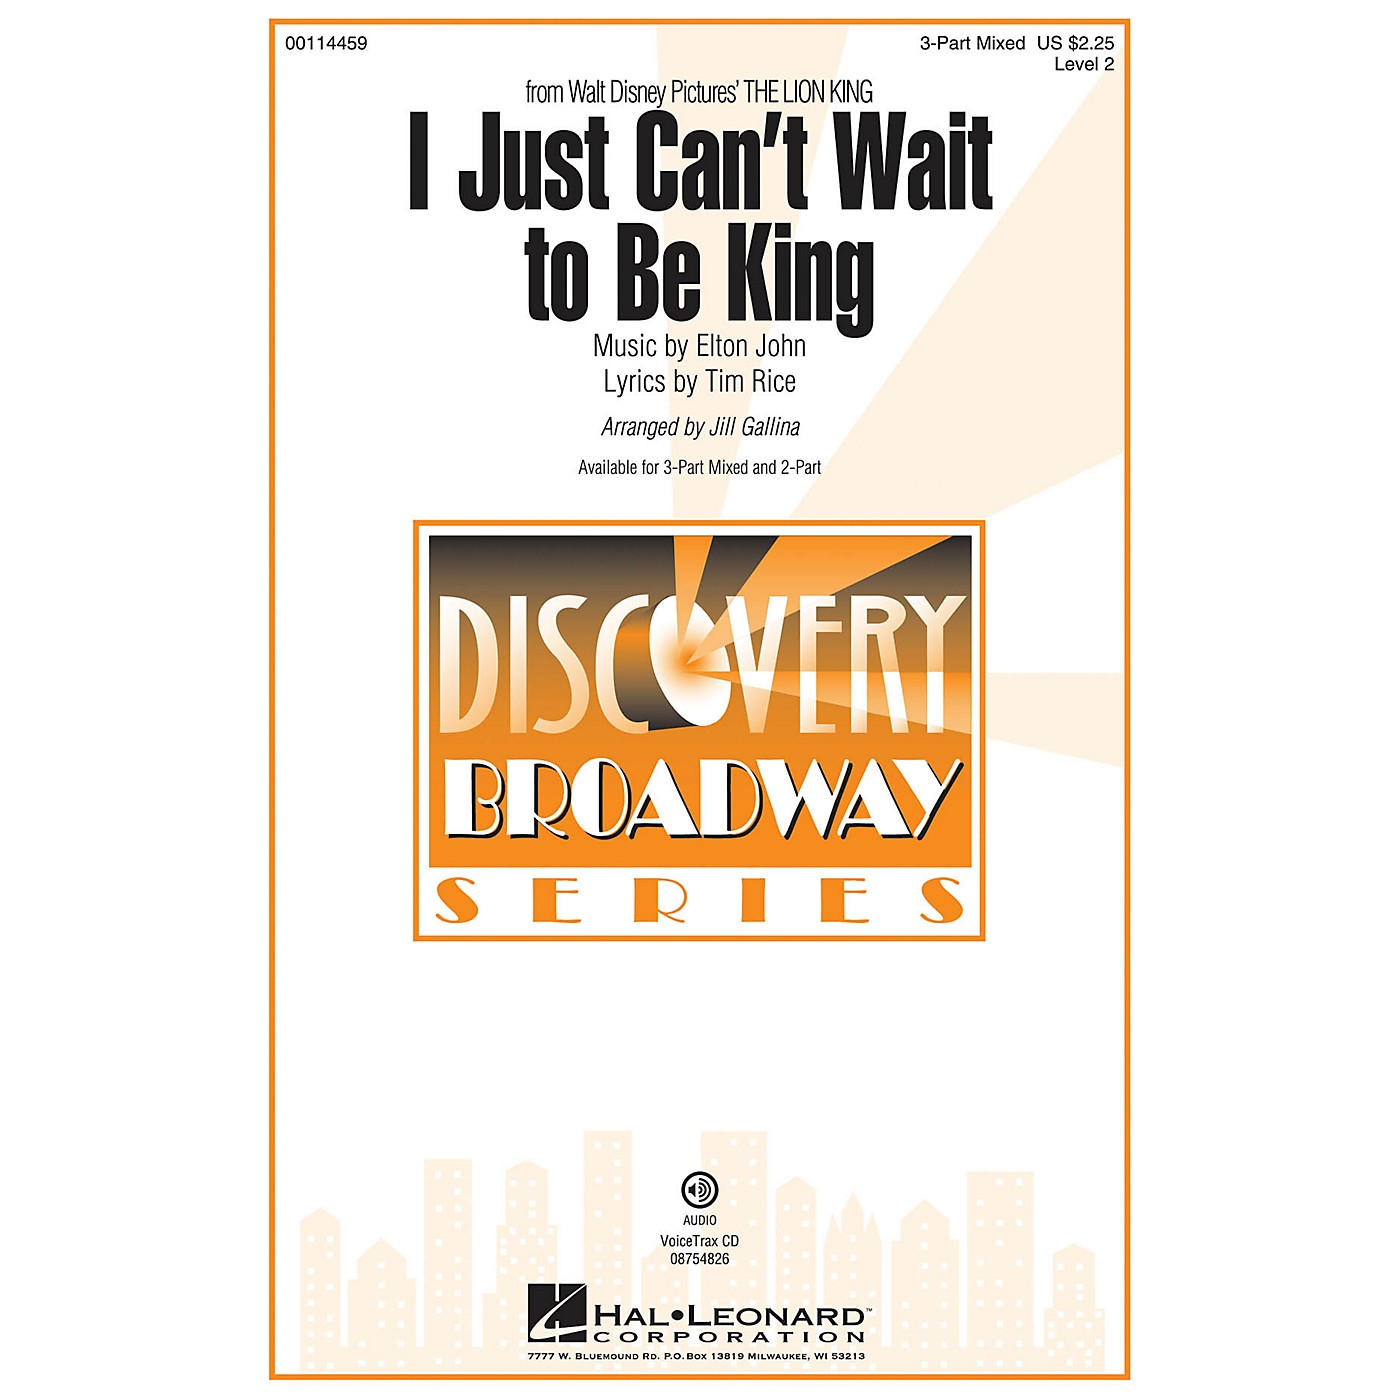 Hal Leonard I Just Can't Wait to Be King (from The Lion King) 3-Part Mixed arranged by Jill Gallina thumbnail